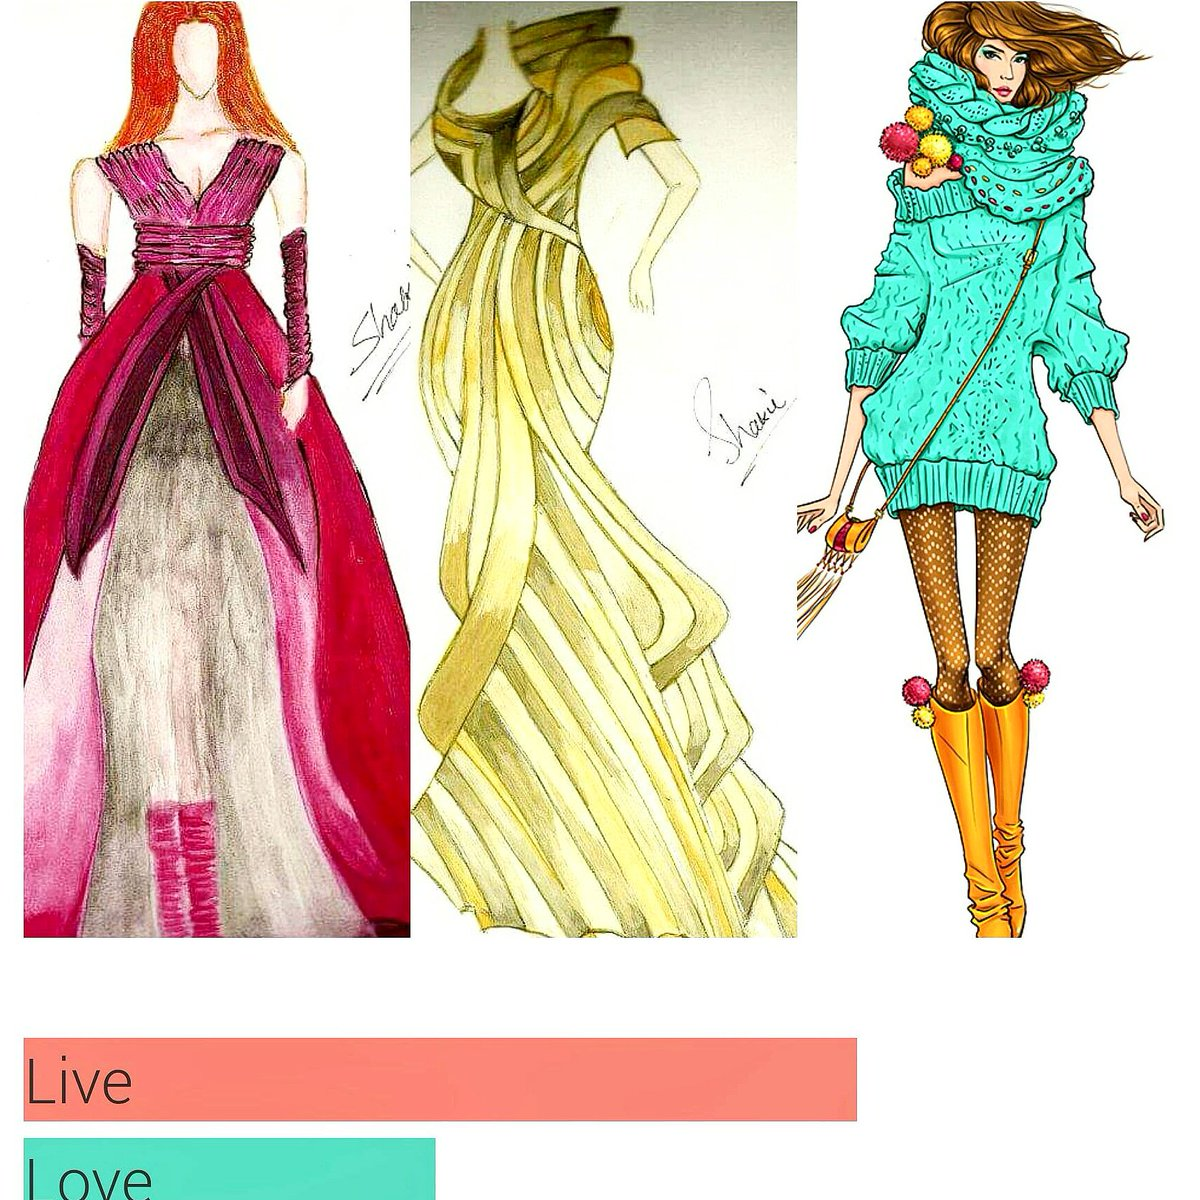 Syed Shakil Ahmed On Twitter How To Learn Fashion Designing At Home Millions Of People All Over The World Share The Same Dream Of Breaking Into The Fashion Uzmacrea Yahoo Com Https T Co Qlgxdim5iw